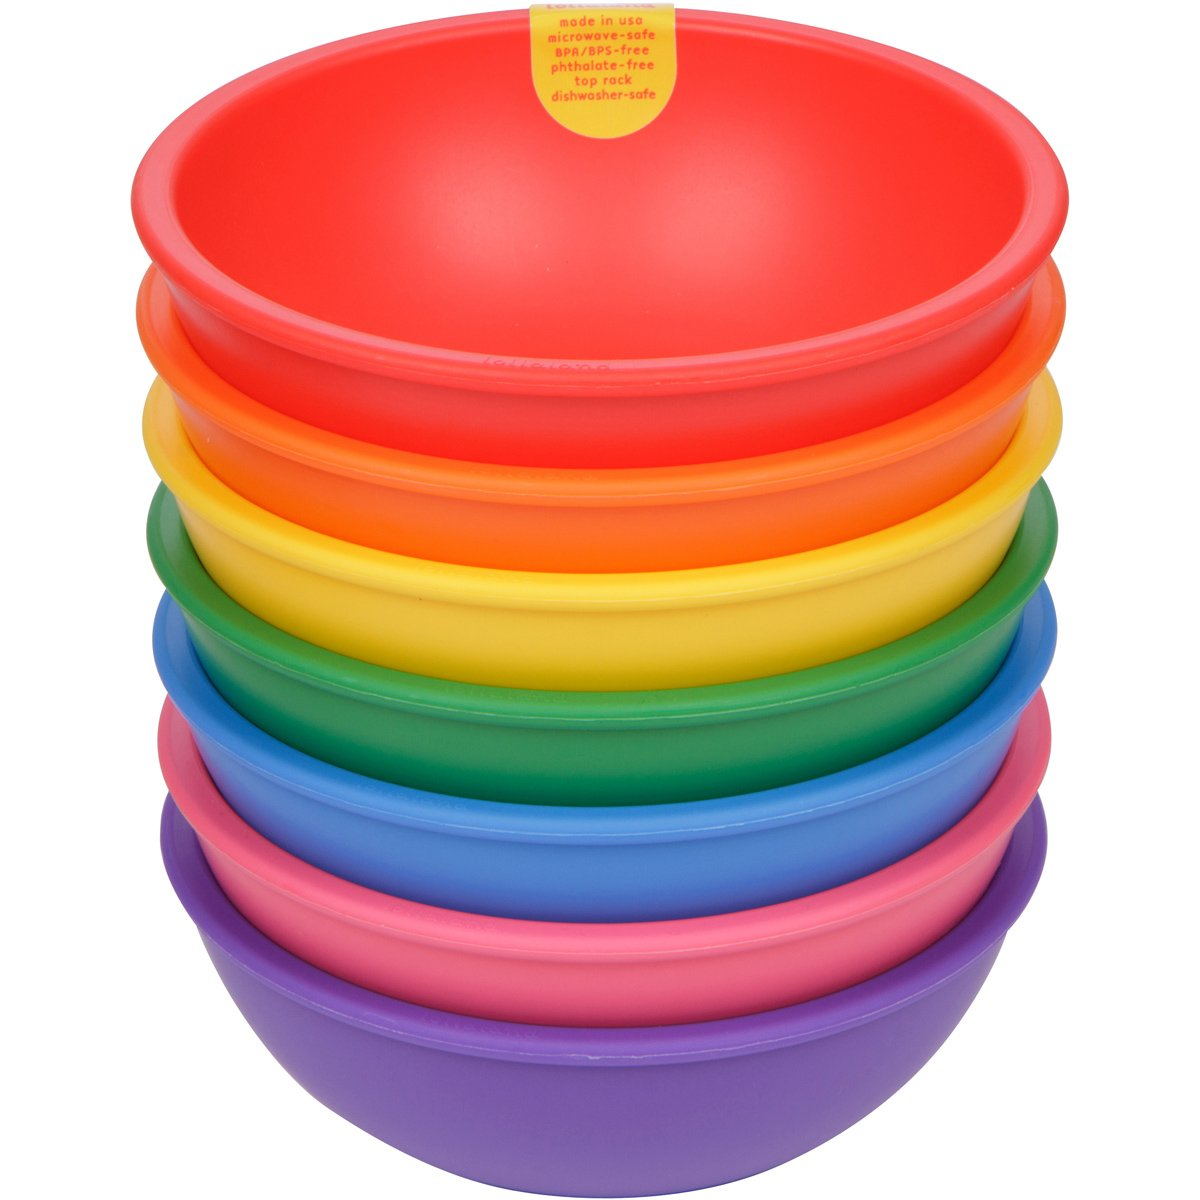 Lollaland Toddler Bowls BPA Free | Plastic Microwave Safe Kids Bowls | Infant & Baby Feeding Bowls | Great Toddler Cereal Bowl | Lollacup Shark Tank Products: 7 Pack Toddler Bowl Mealtime Set